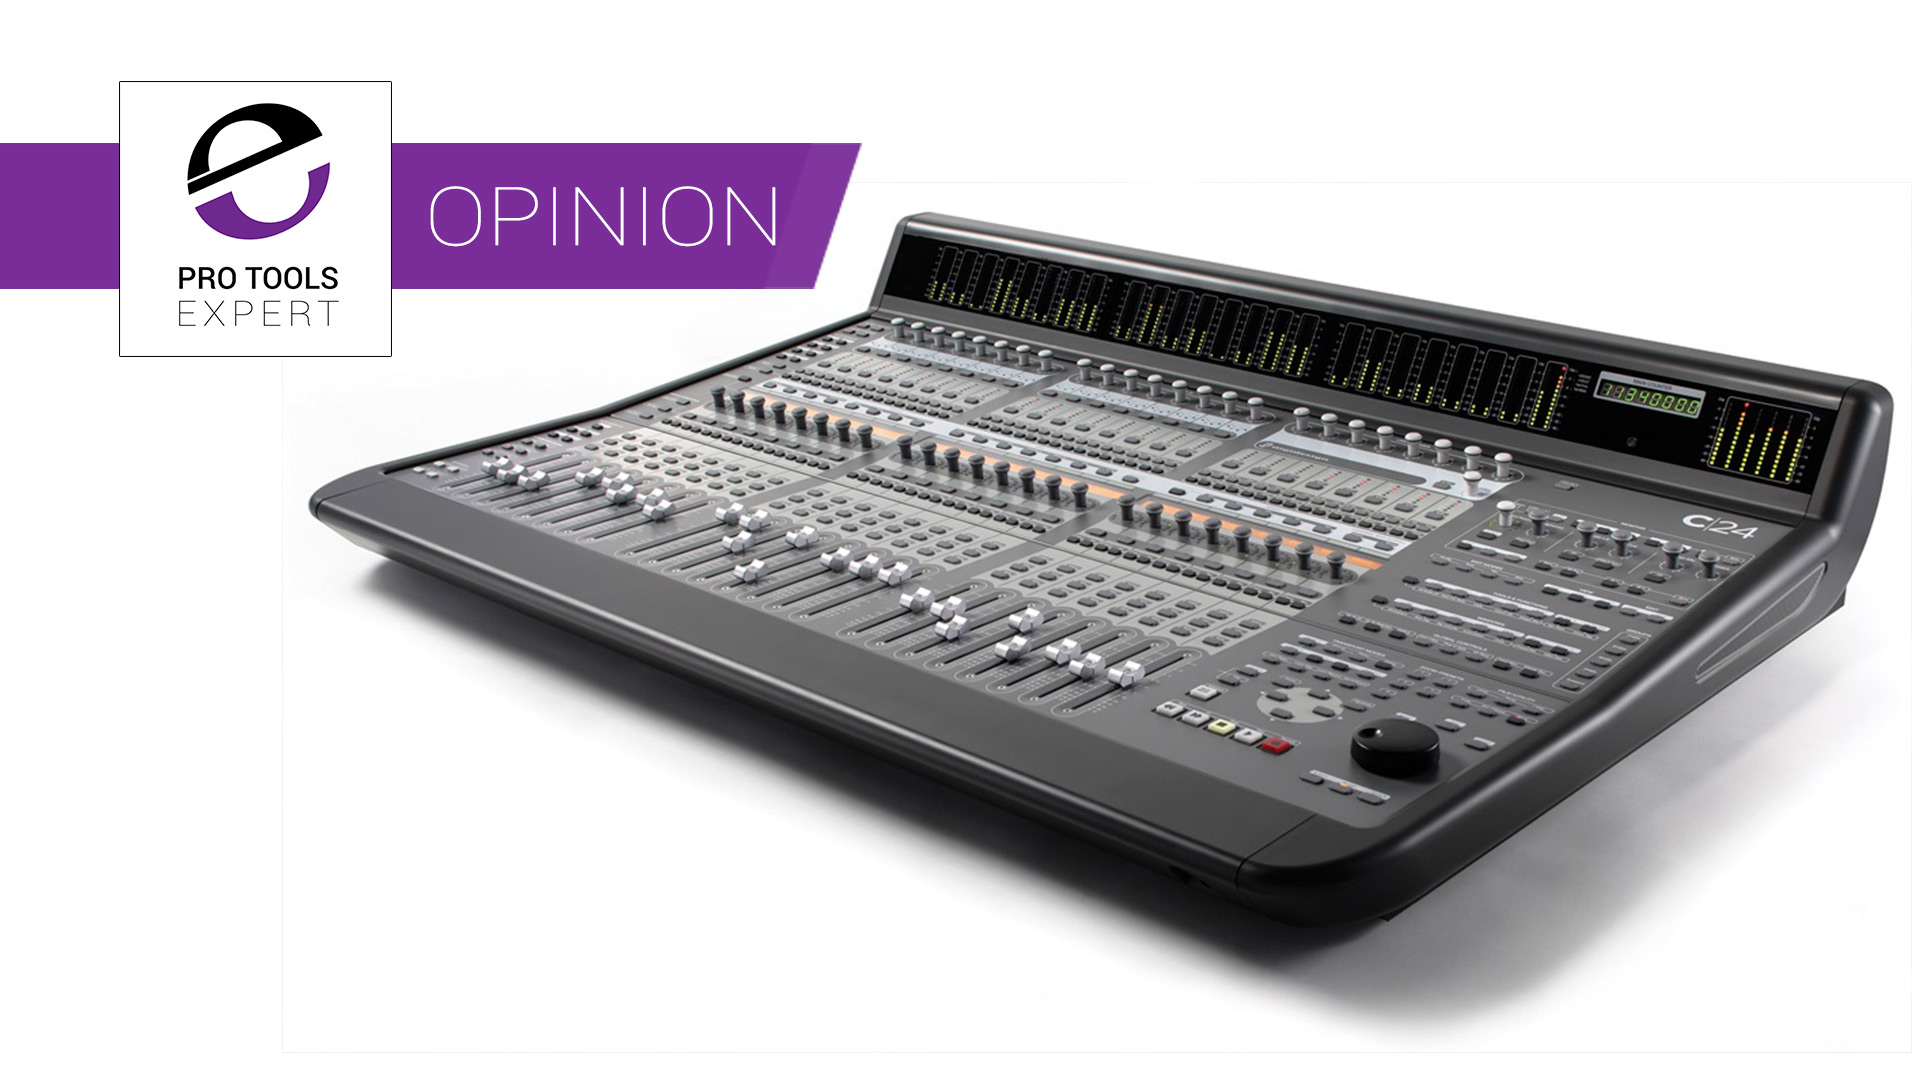 The C|24 Pro Tools Control Surface Is Ten Years Old This